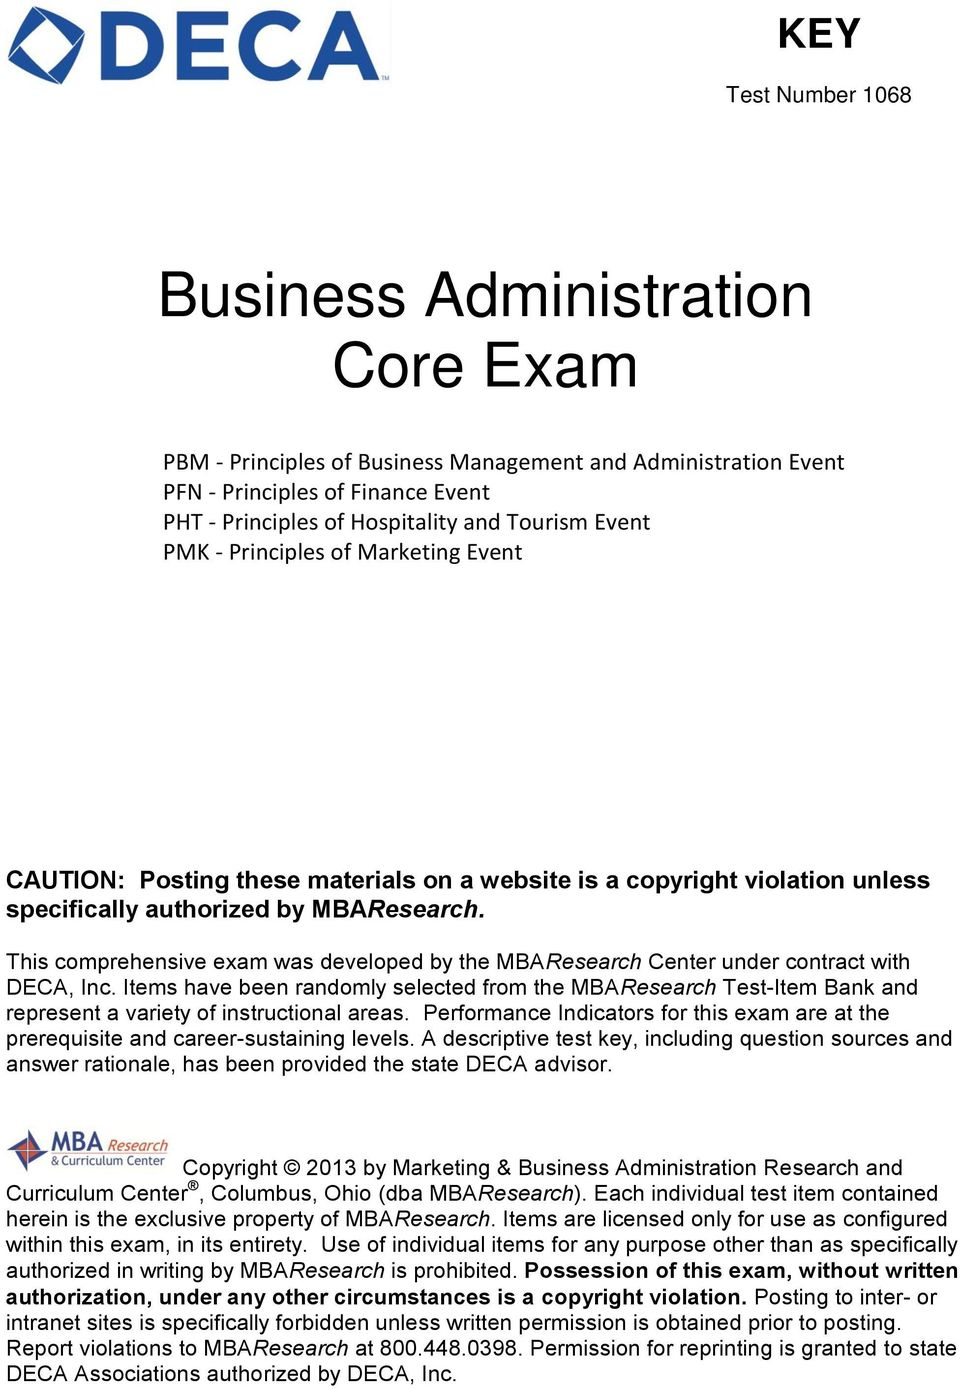 Business Administration Core Exam - PDF Free Download